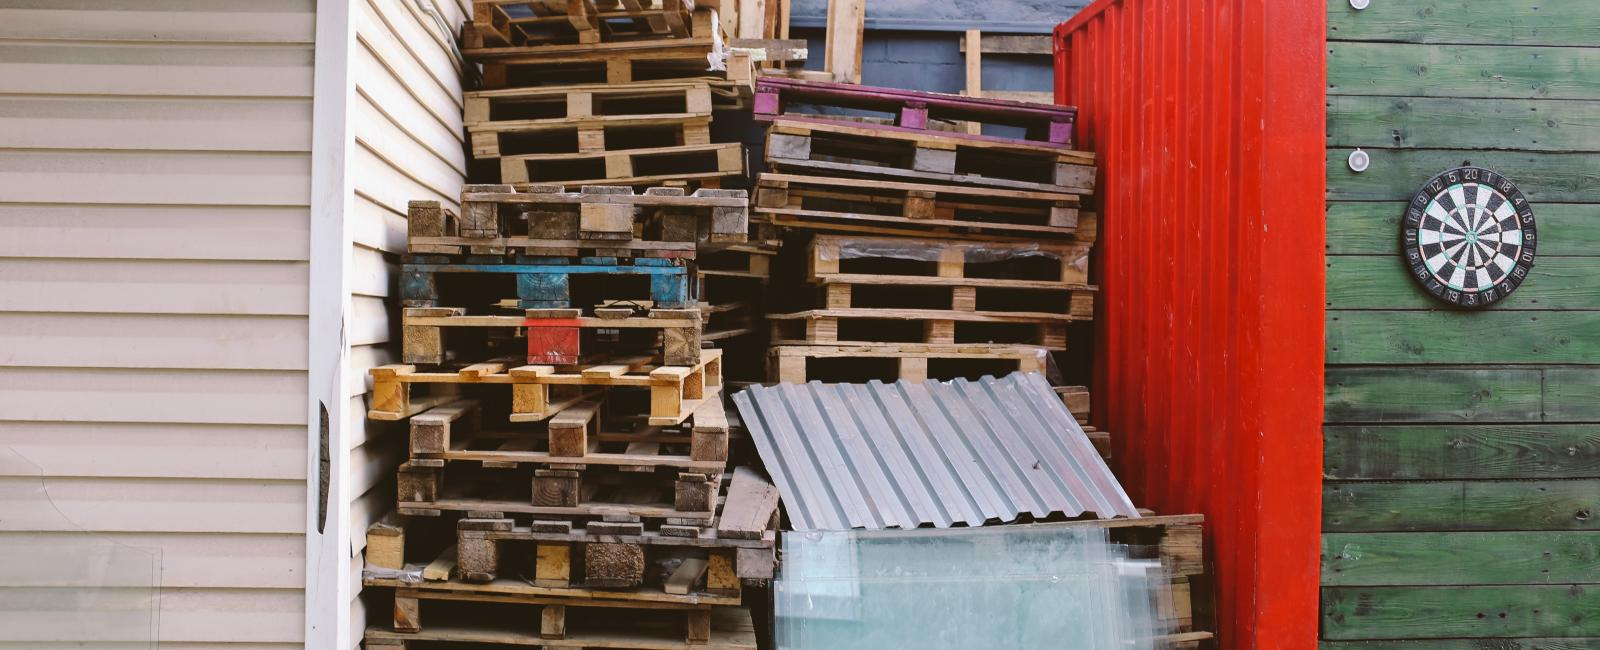 Dumpster and wooden pallets